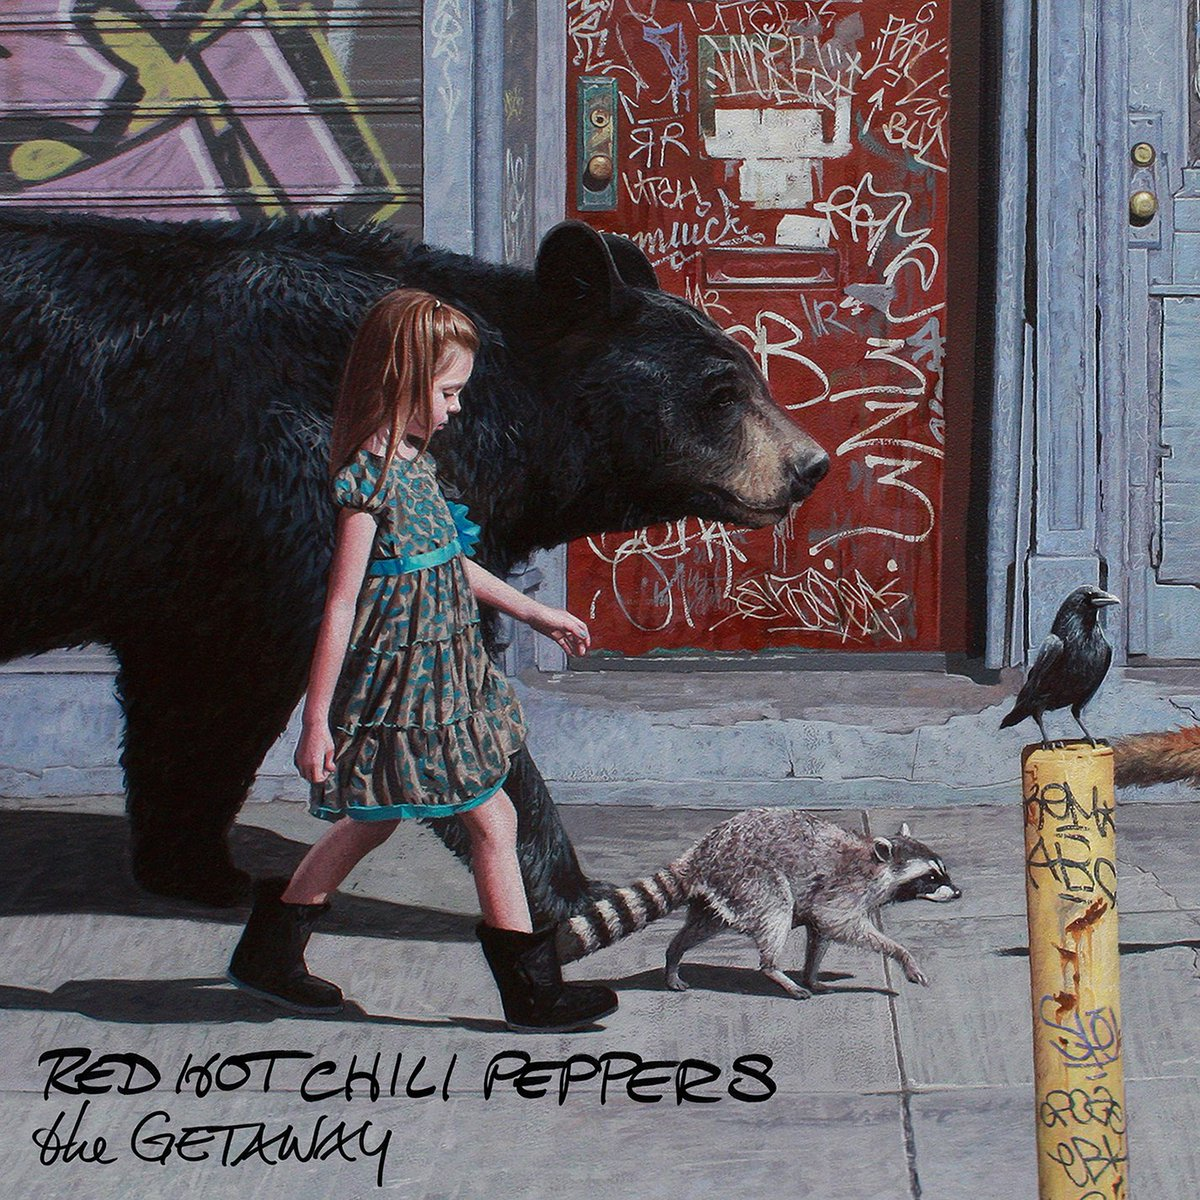 Saturday seems like a good day for @ChiliPeppers. CD and Double Vinyl of THE GETAWAY in record stores now. https://t.co/k9oTk5cQAM